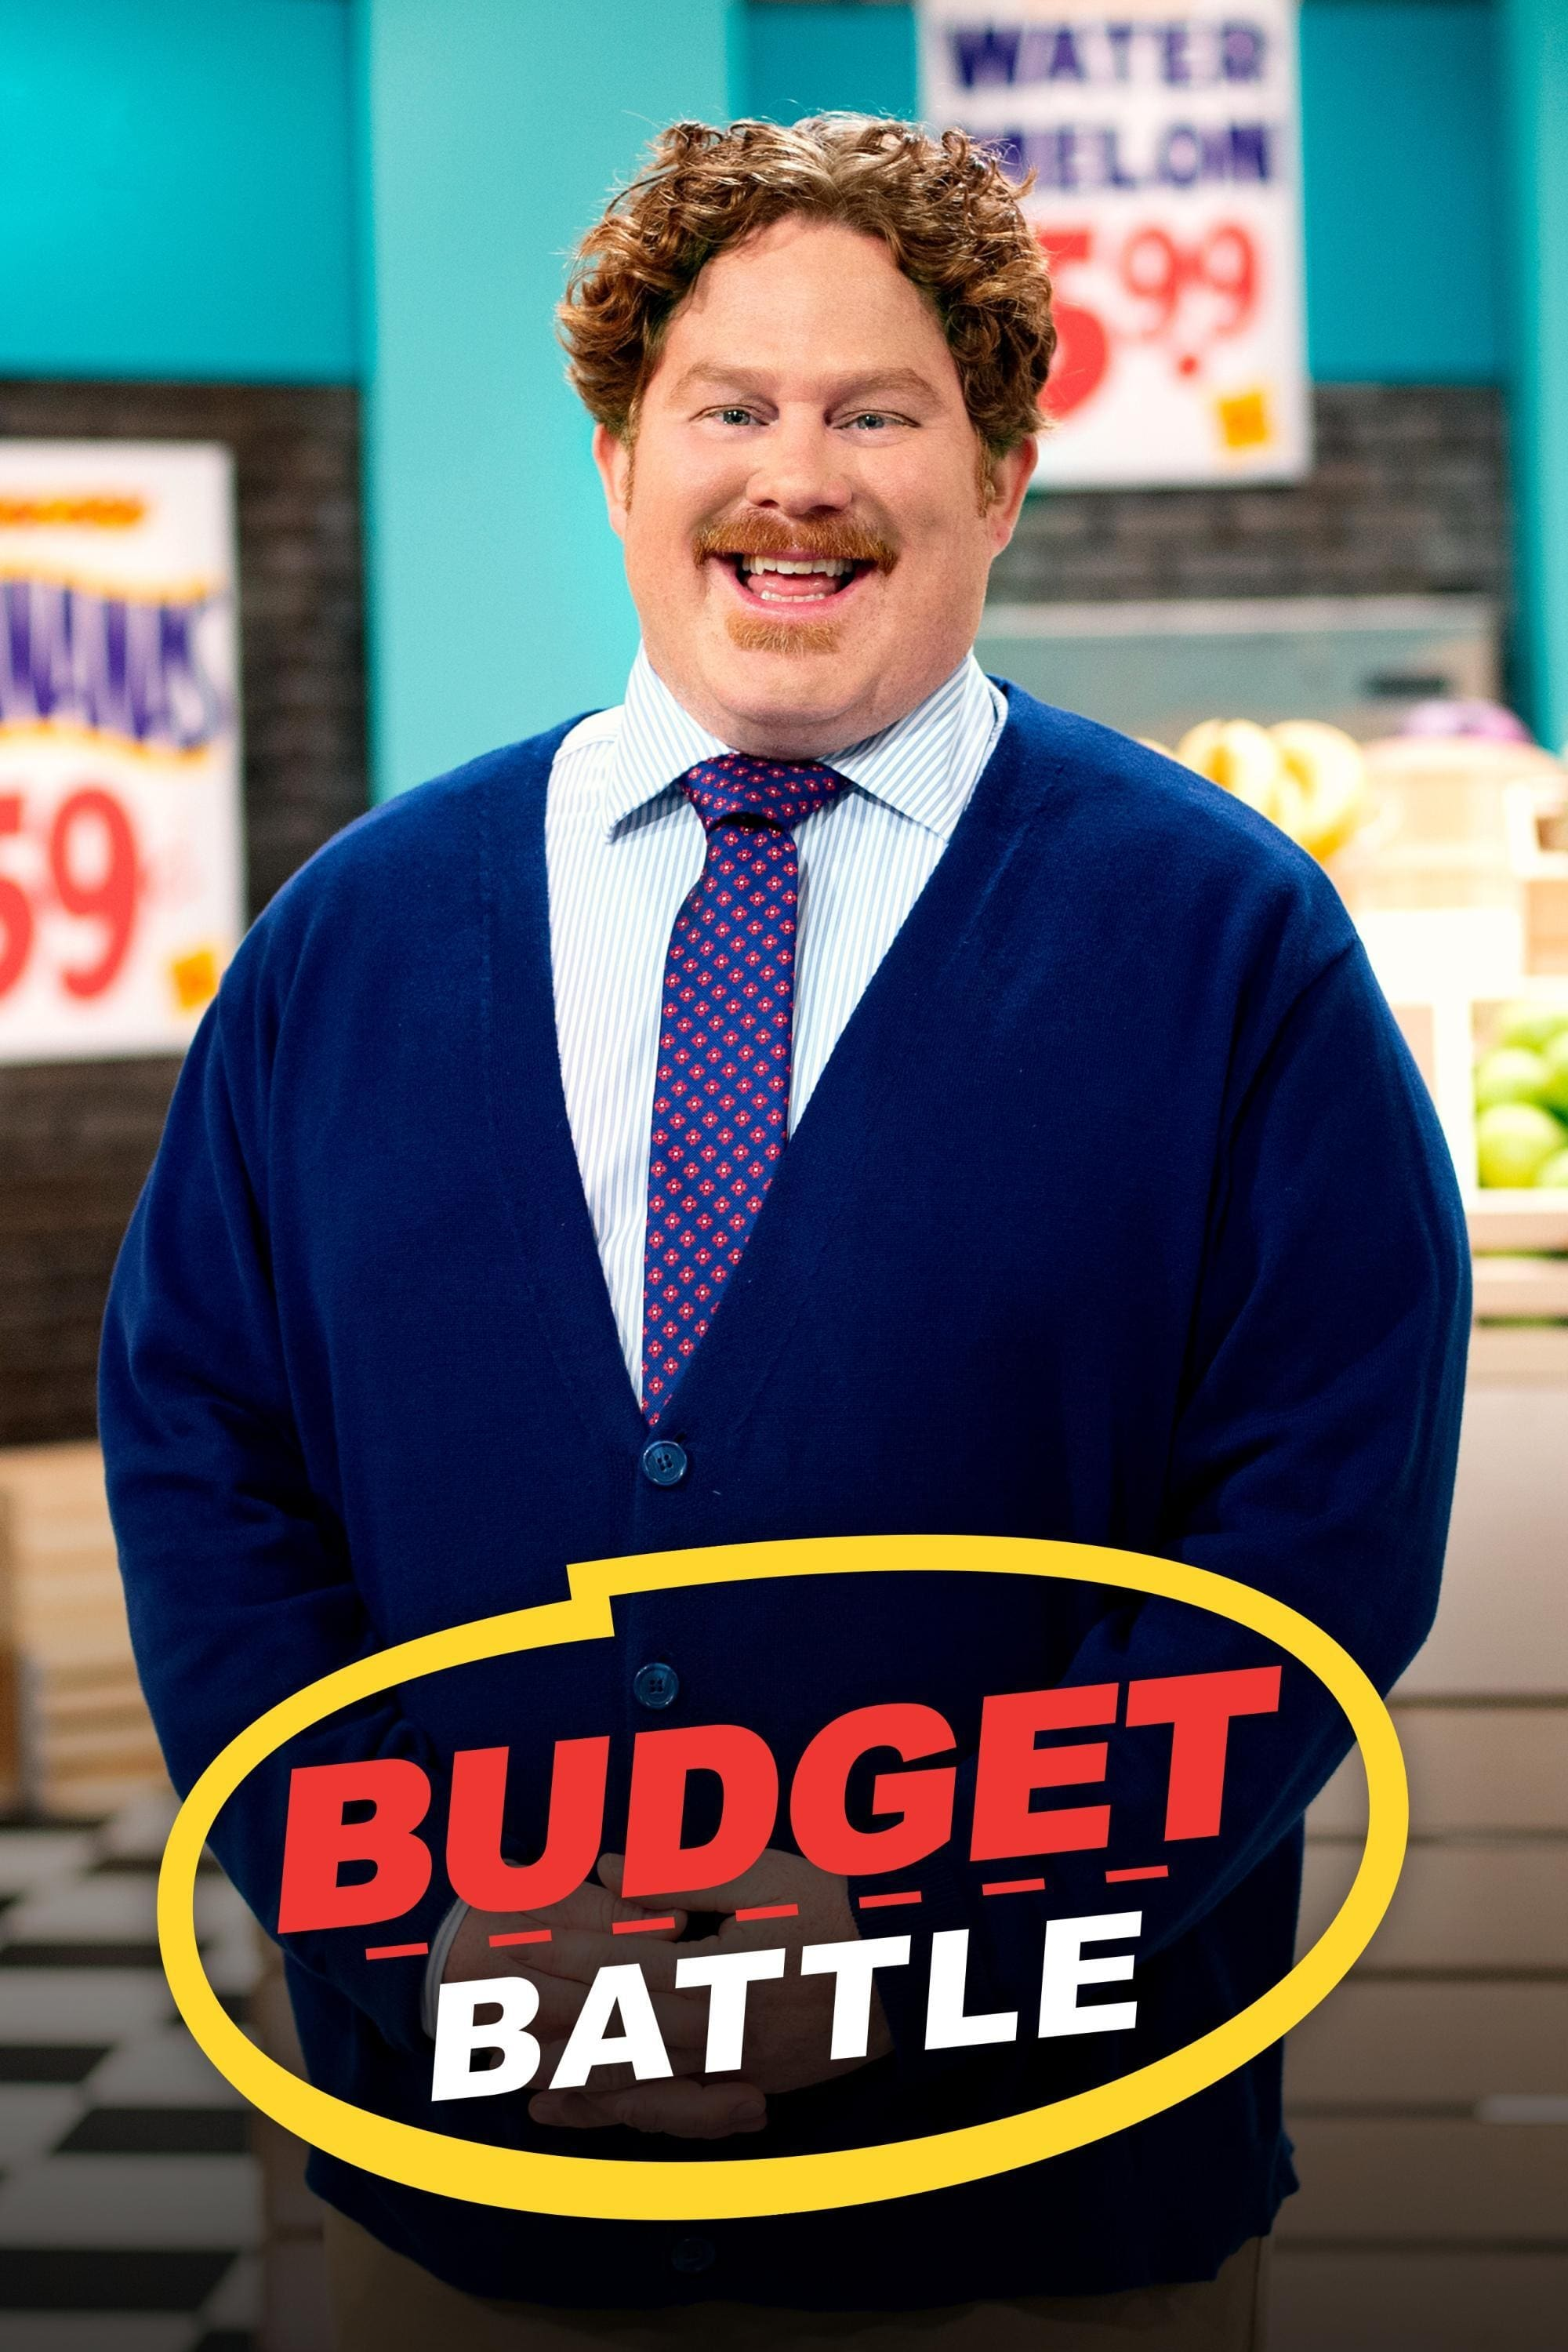 Budget Battle TV Shows About King